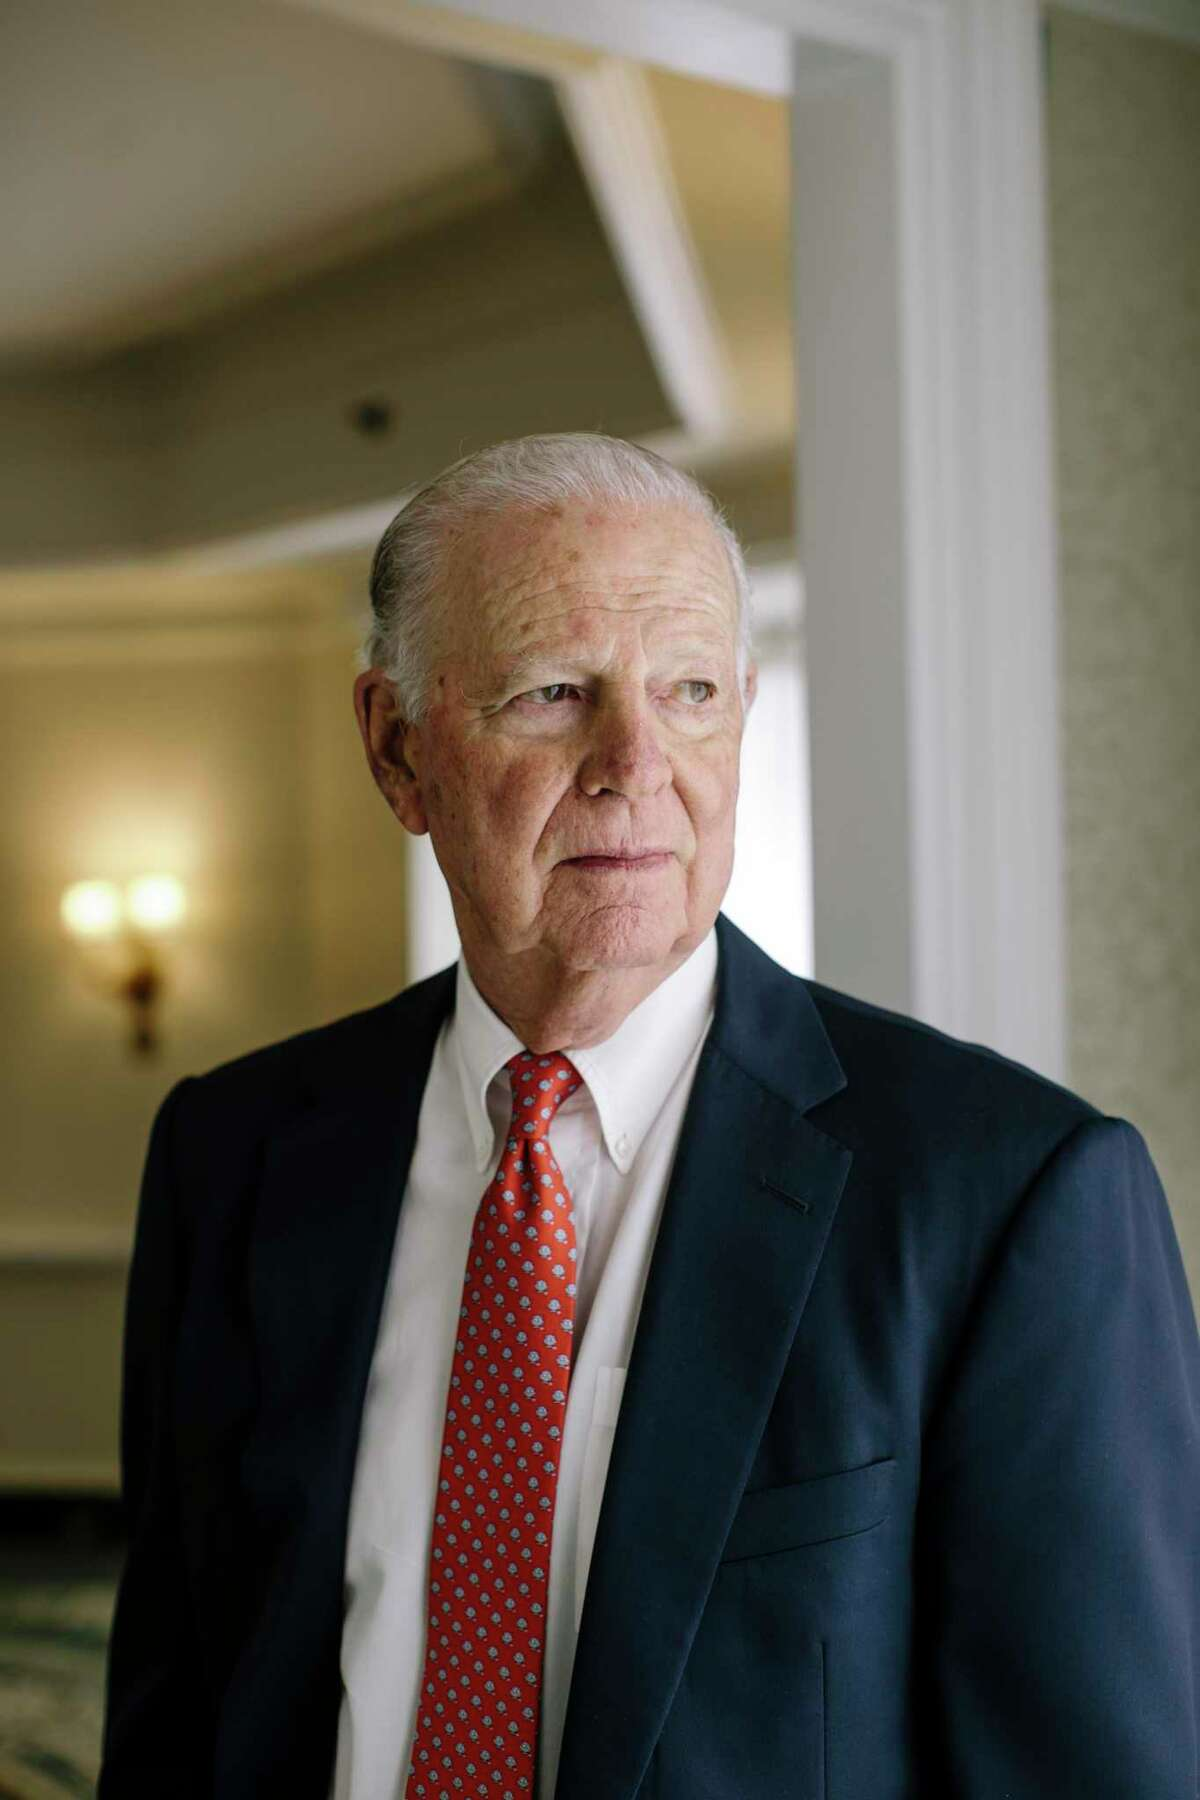 James Baker, a former secretary of State in the first Bush administration, is among the Republicans supporting a carbon tax as a way to tackle climate change.